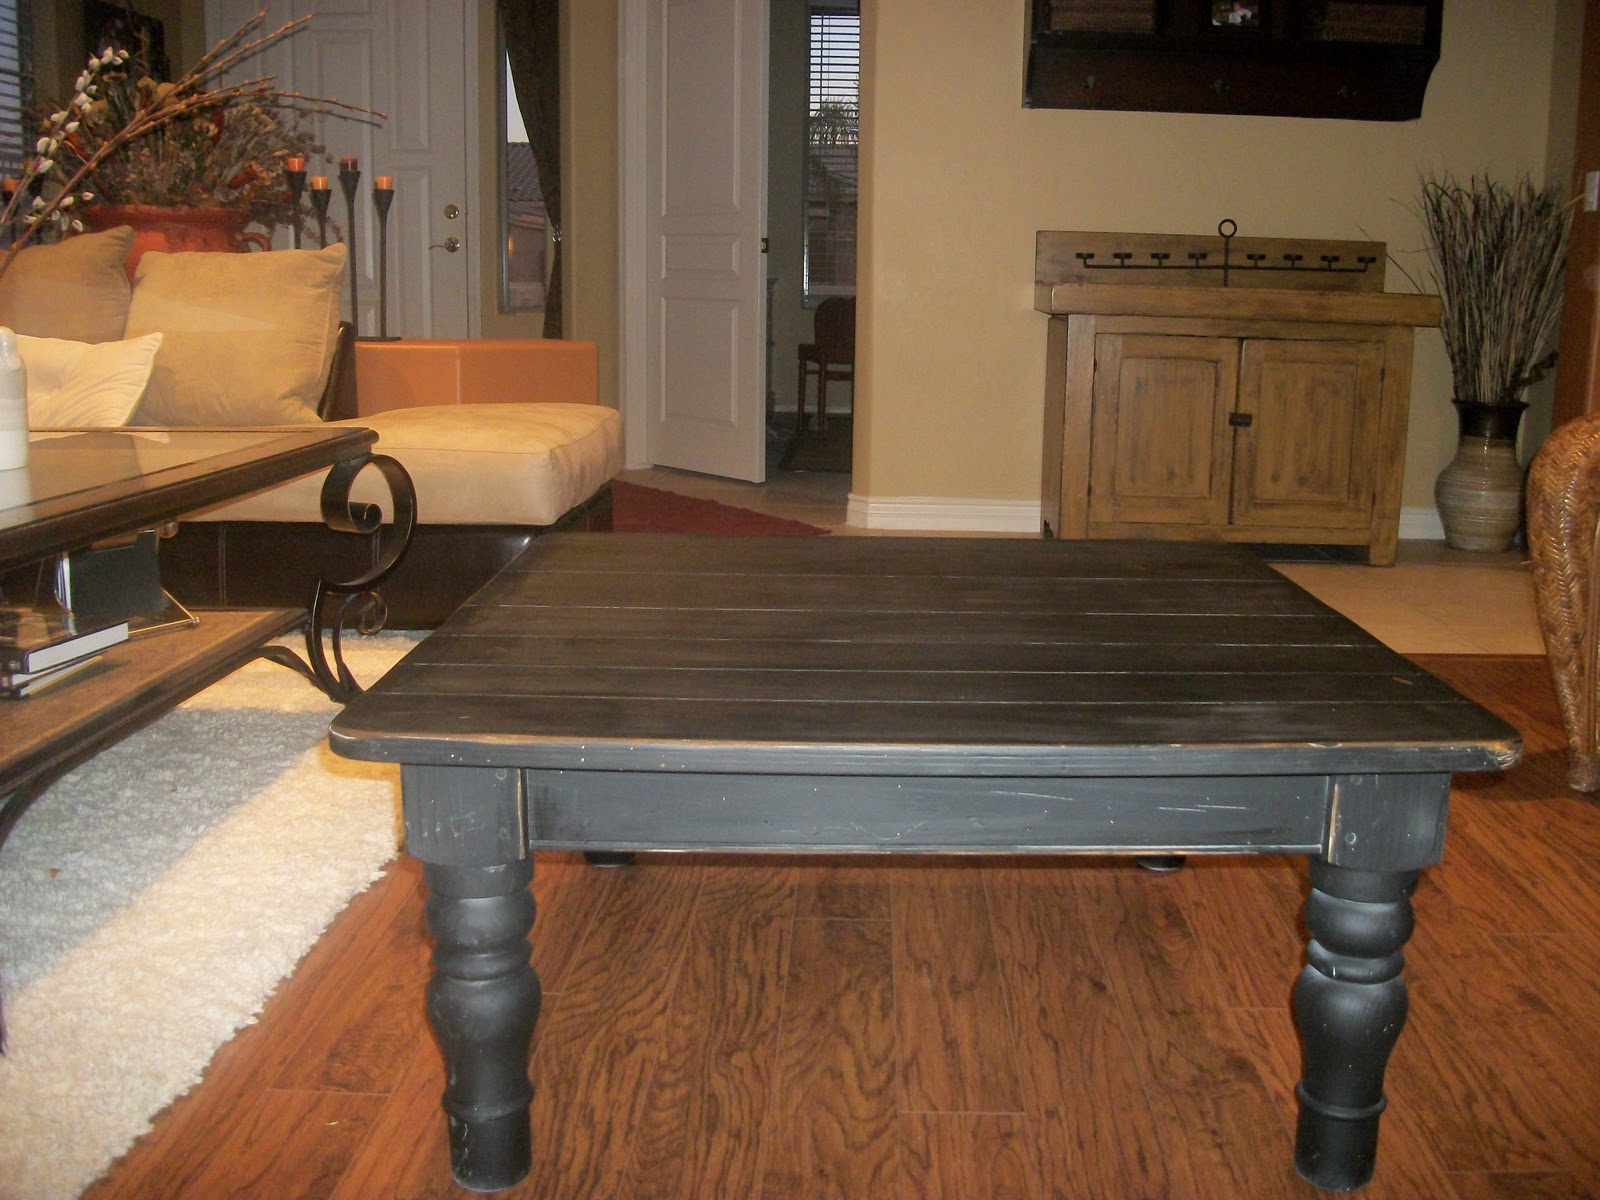 designer dropout ethan allen farmhouse style coffee table sold. Black Bedroom Furniture Sets. Home Design Ideas